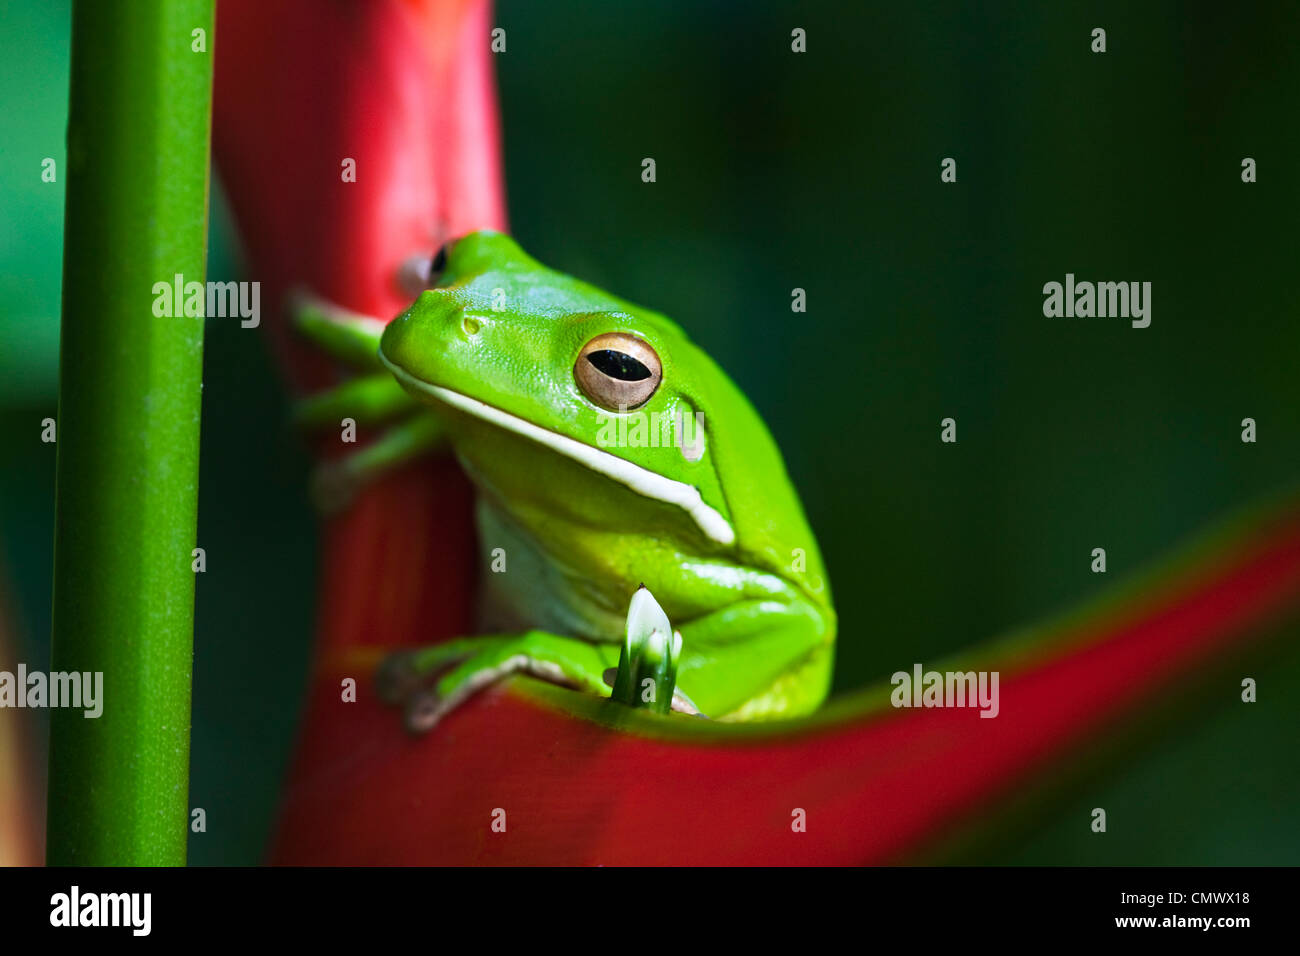 White-lipped tree frog (Litoria infrafrenata) assis sur une fleur mauve. Cairns, Queensland, Australie Photo Stock